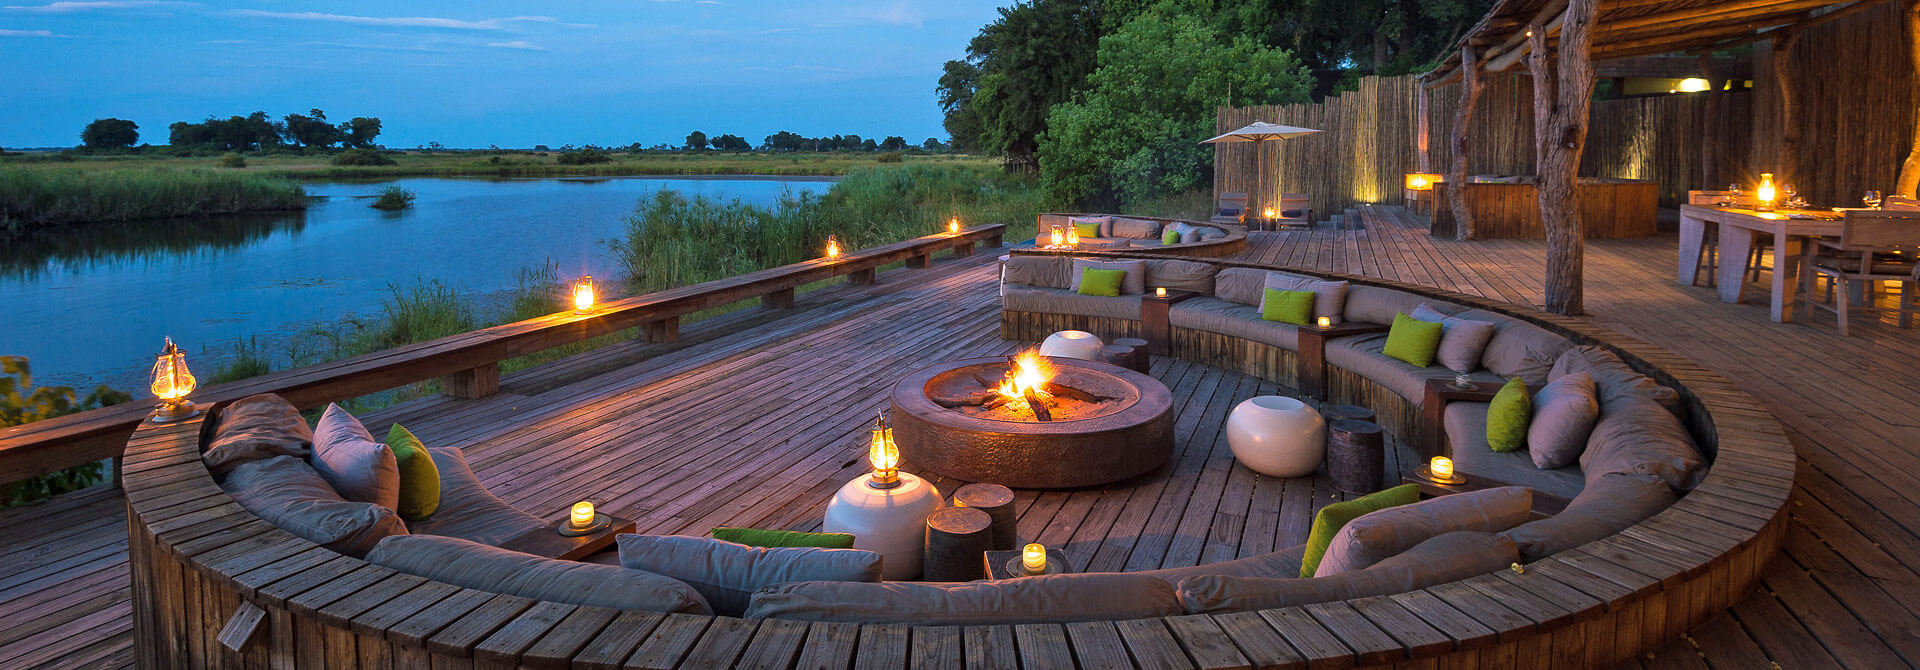 kings-pool-deck -  WILDERNESS SAFARIS.jpg